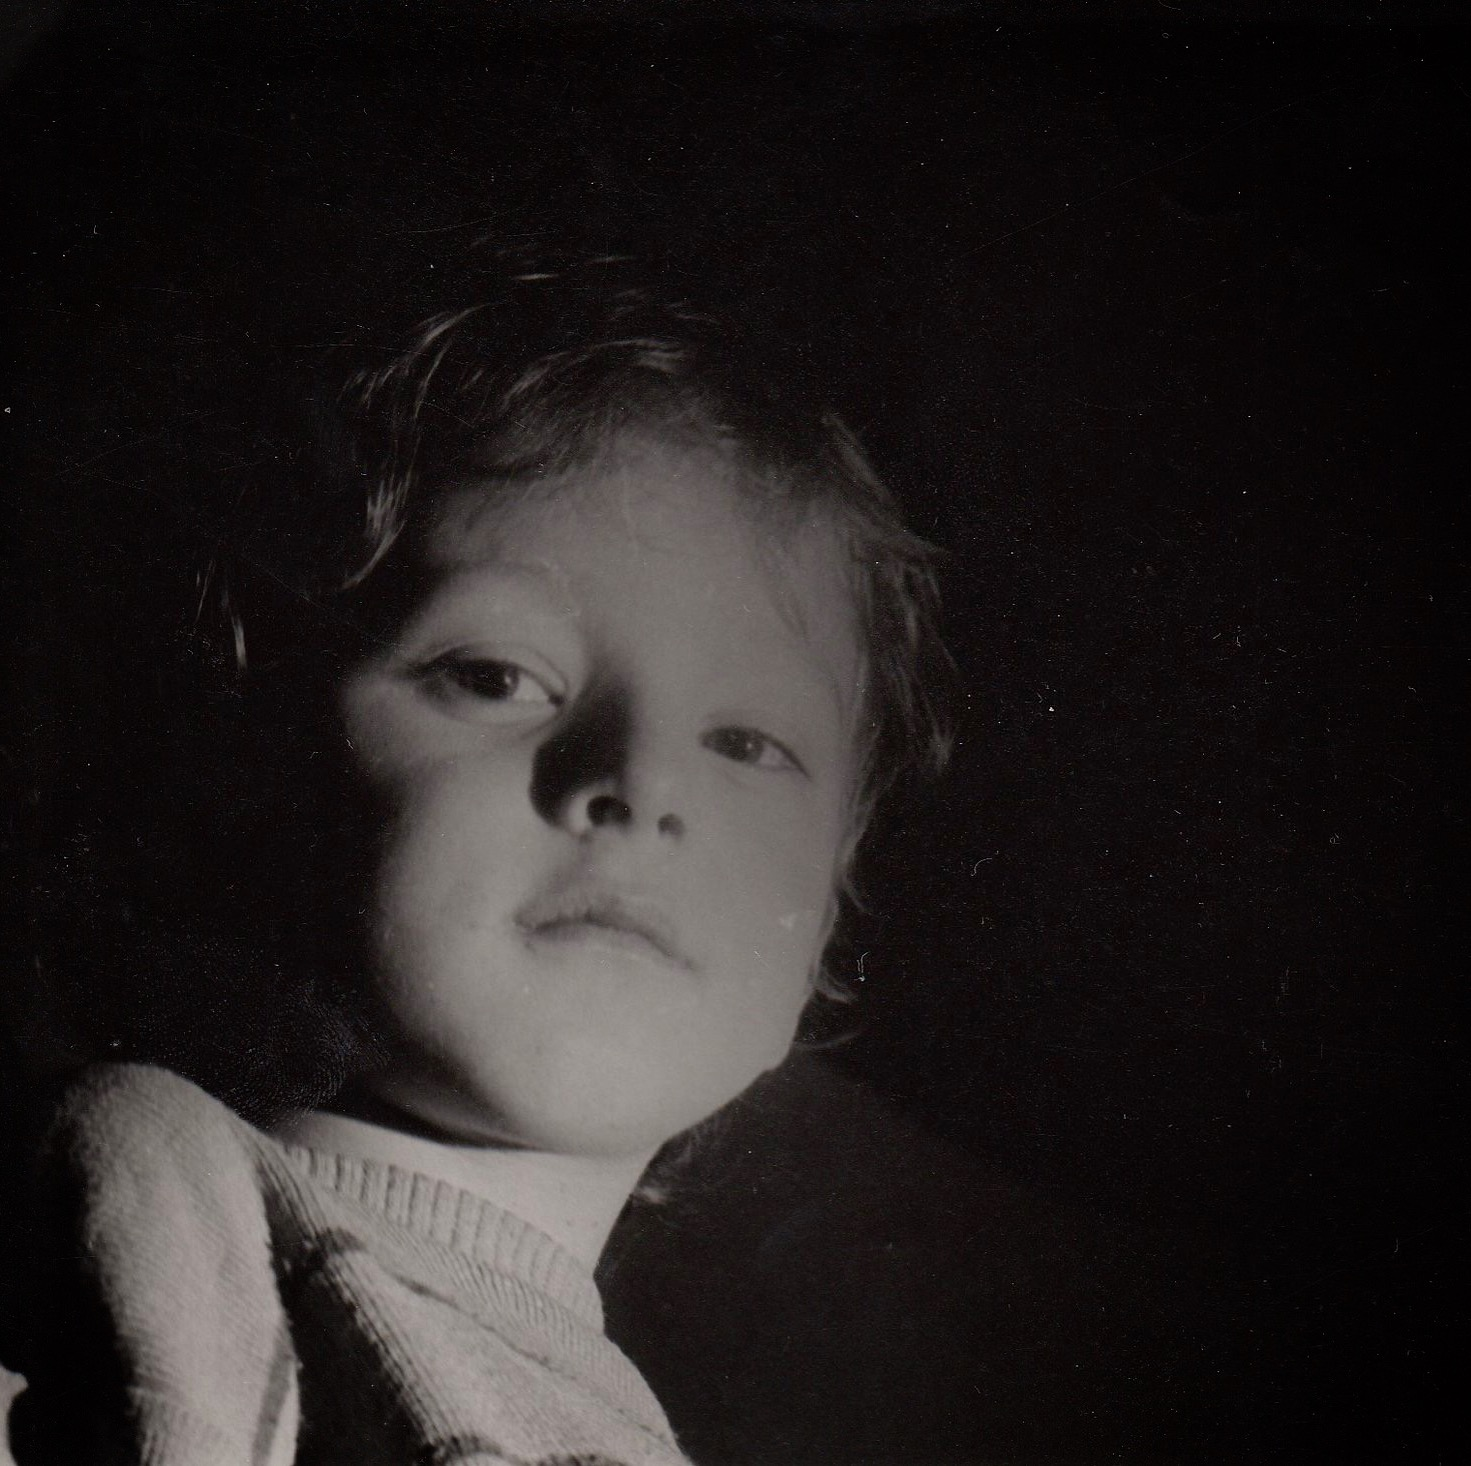 Black and white portrait of a 4 year old child with curly hair